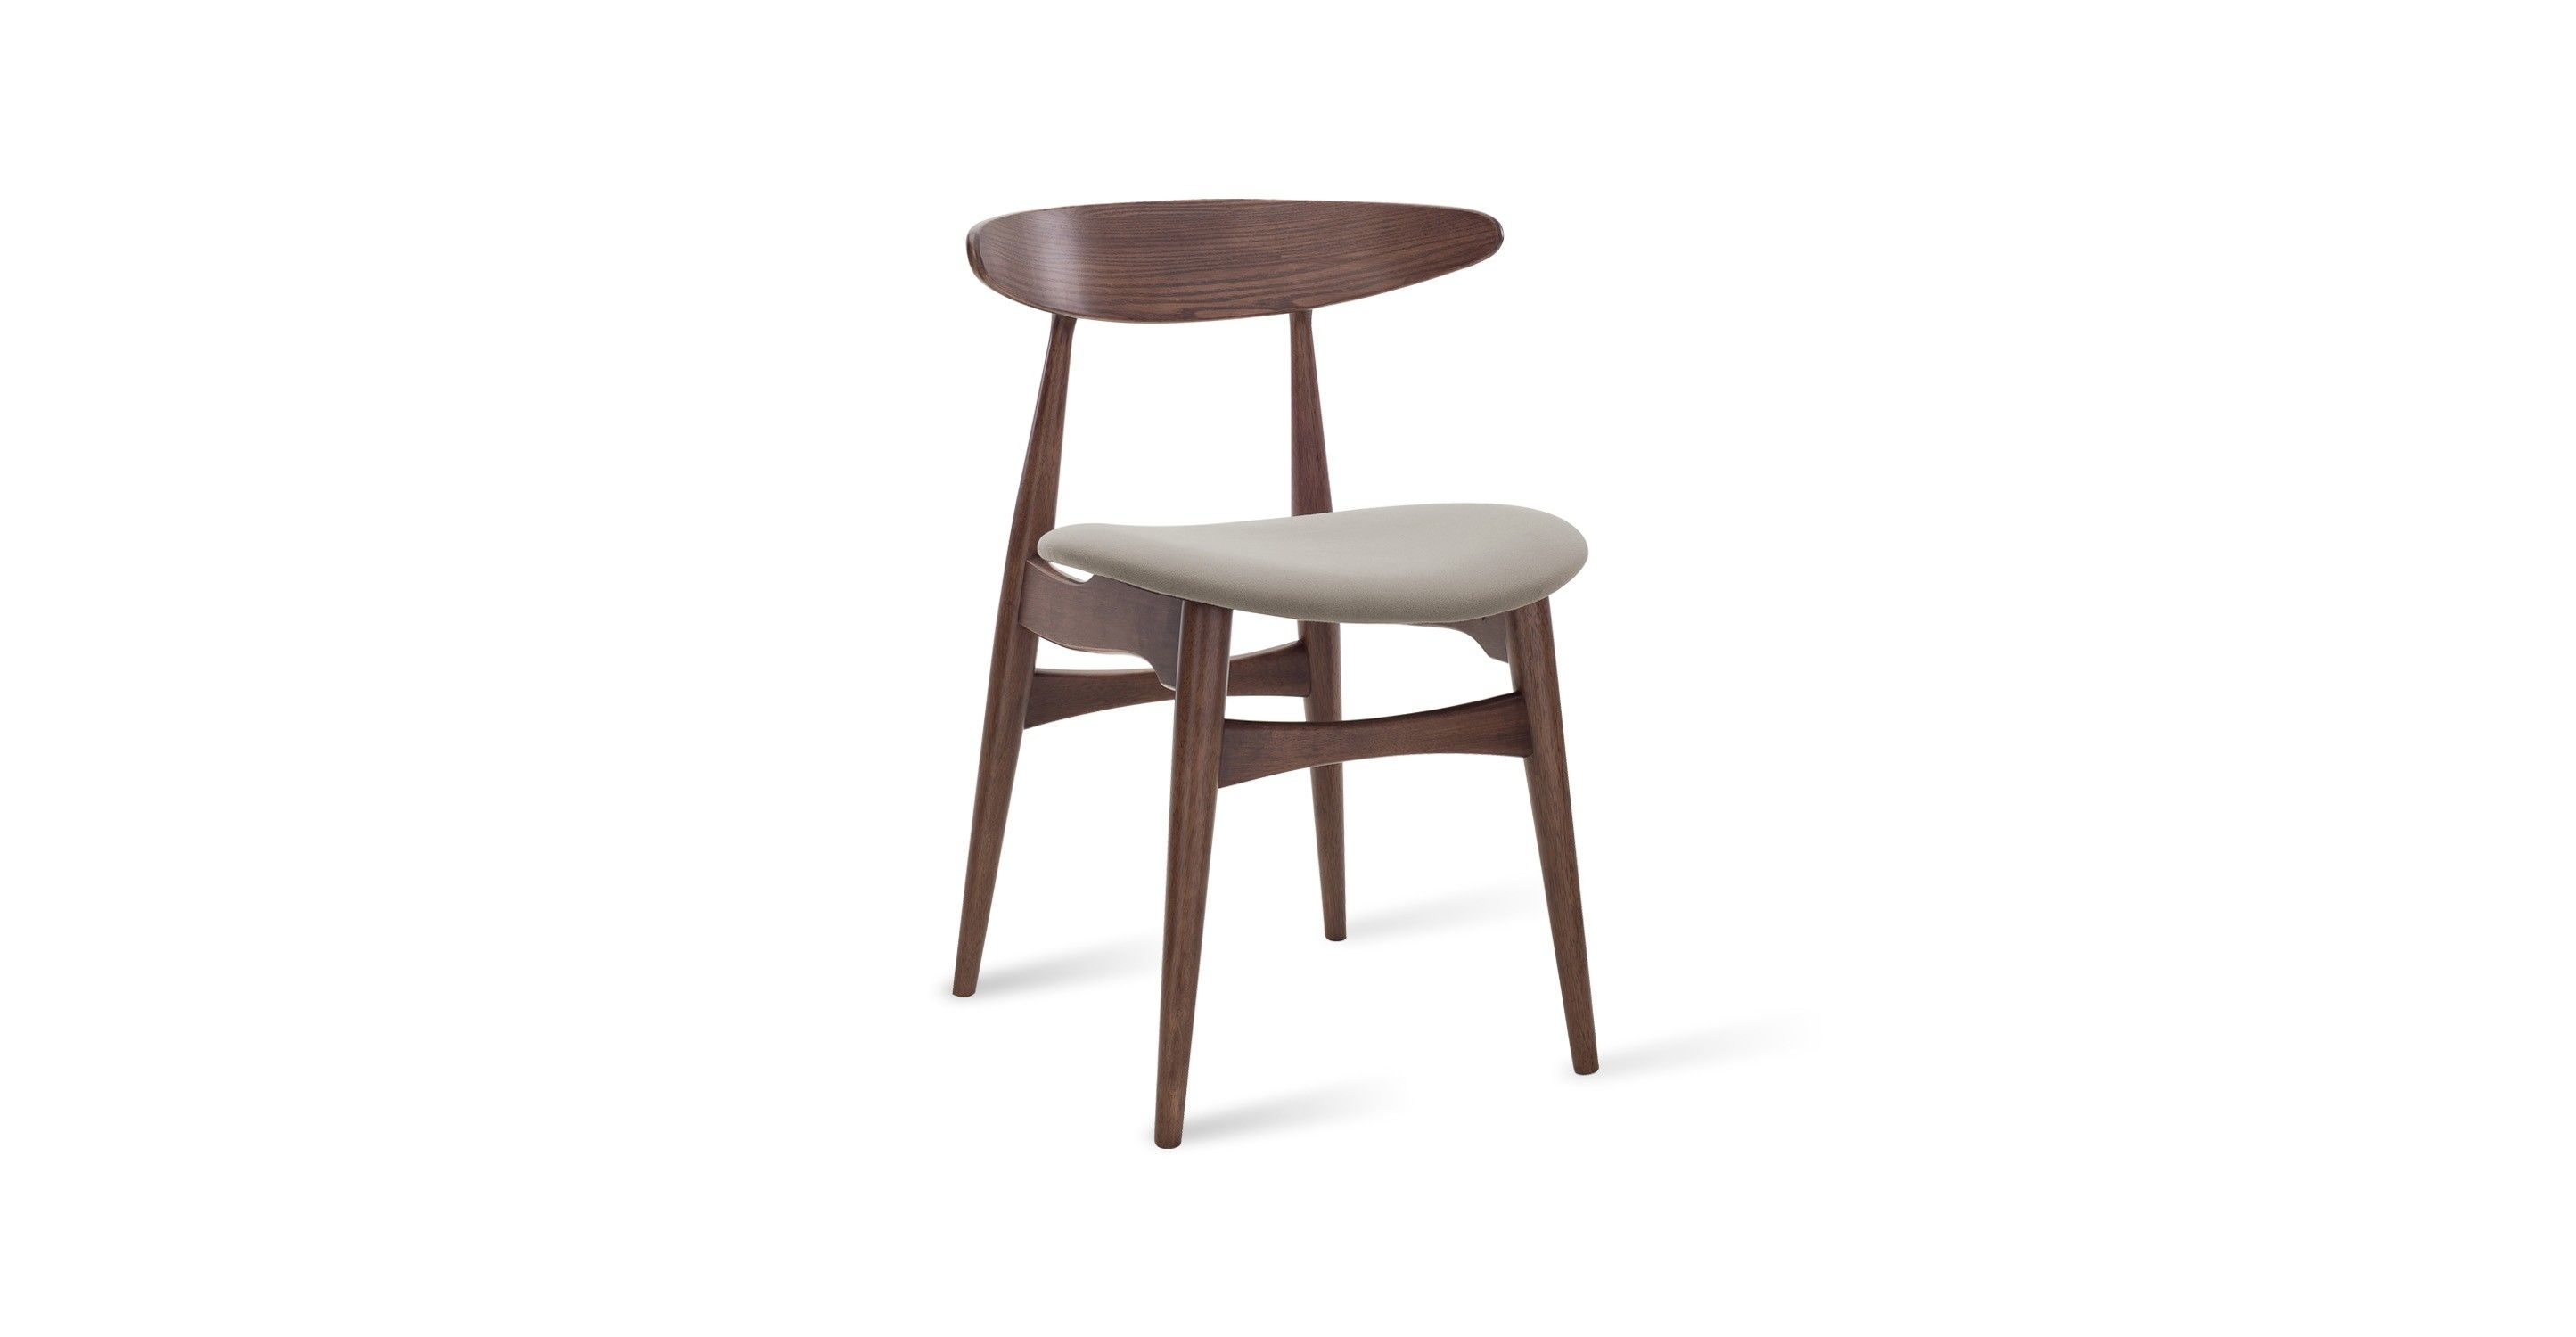 Tricia Barley Fabric Walnut Dining Chair Chairs Stools